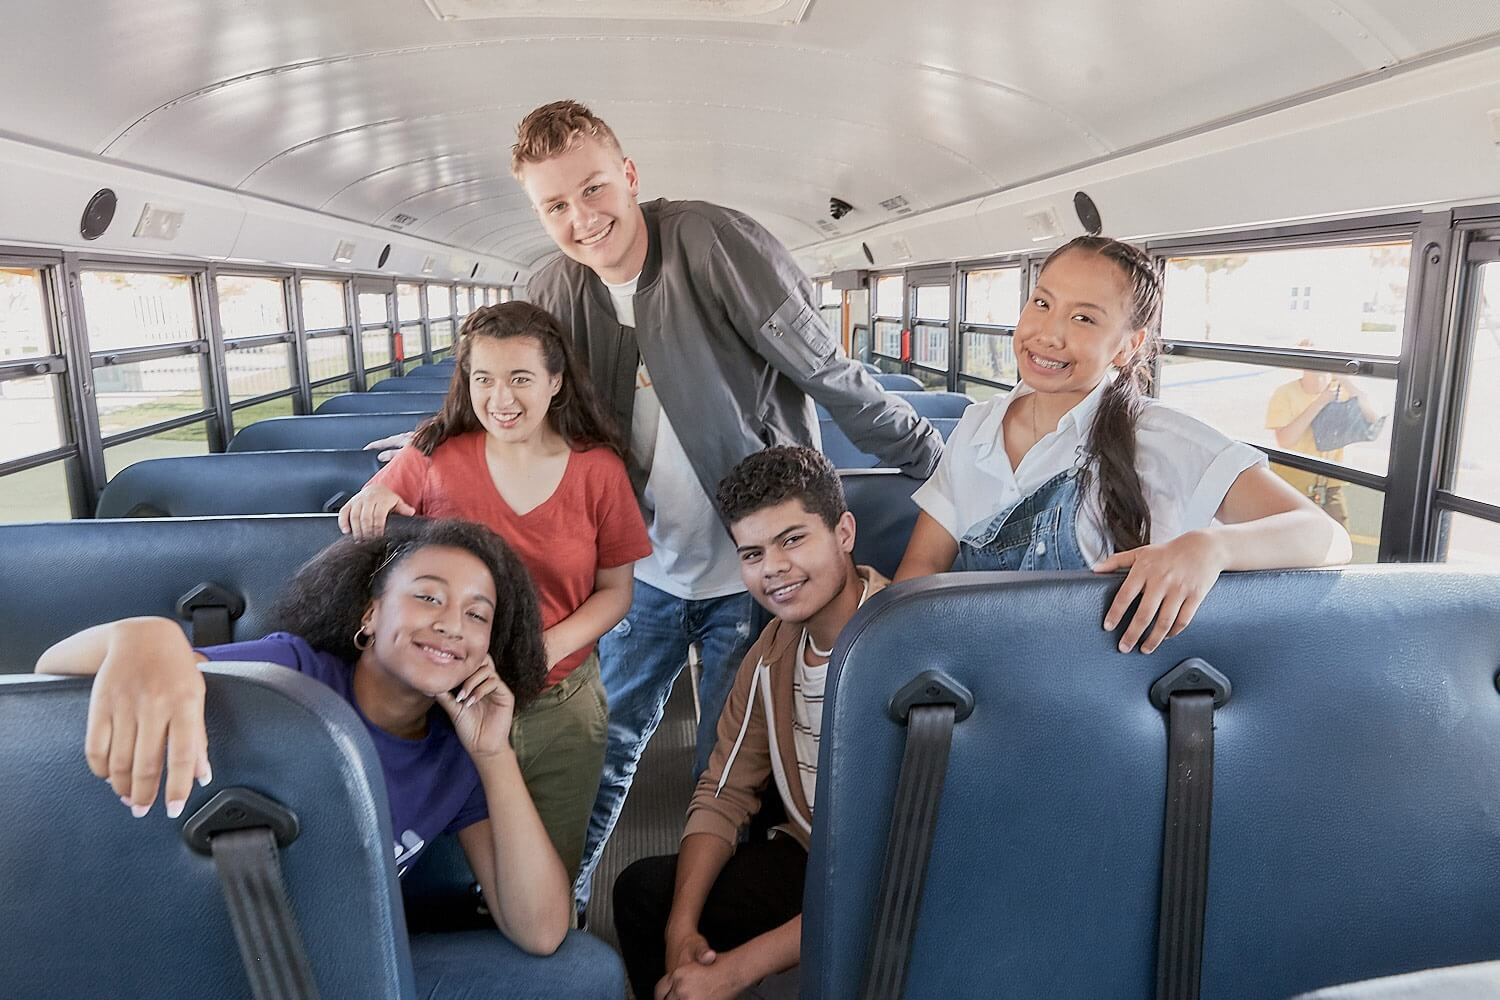 A group of students posing on a school bus.